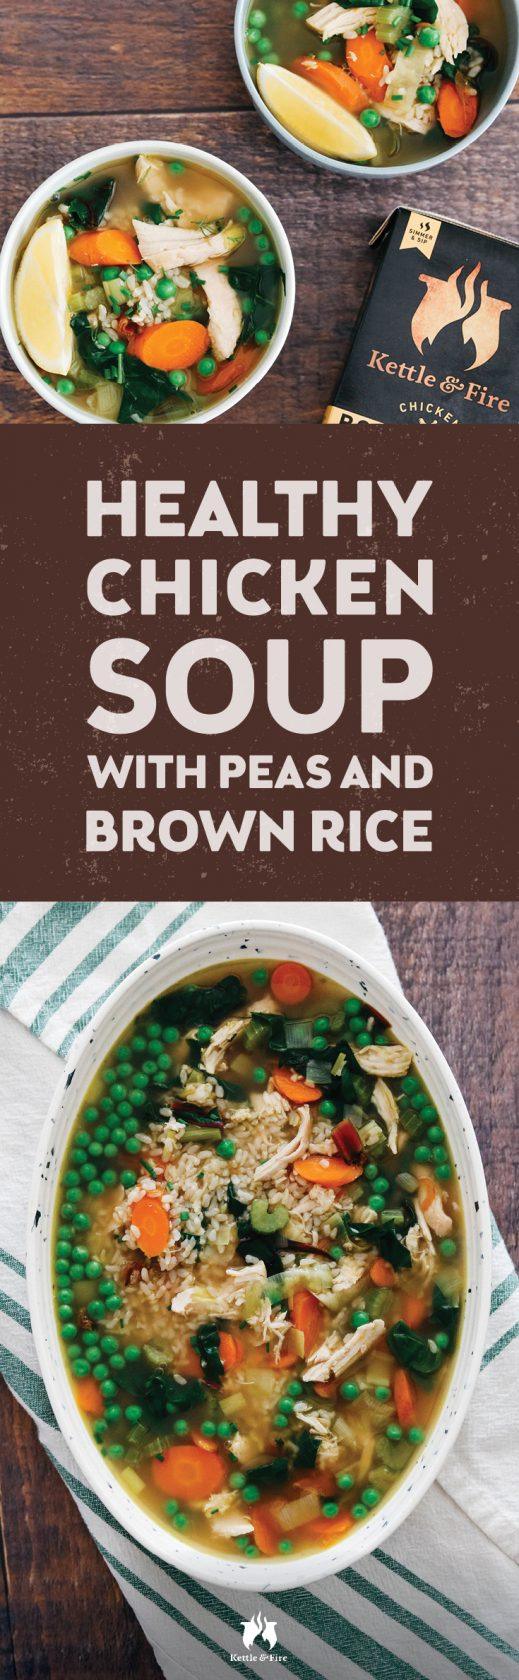 Tender bits of shredded chicken cooked in coconut oil and bone broth are the highlight of this healthy chicken soup recipe. This soup recipe is fortified with our Kettle & Fire Chicken Bone Broth, which ups the nutrition with a good dose of collagen and extra protein.